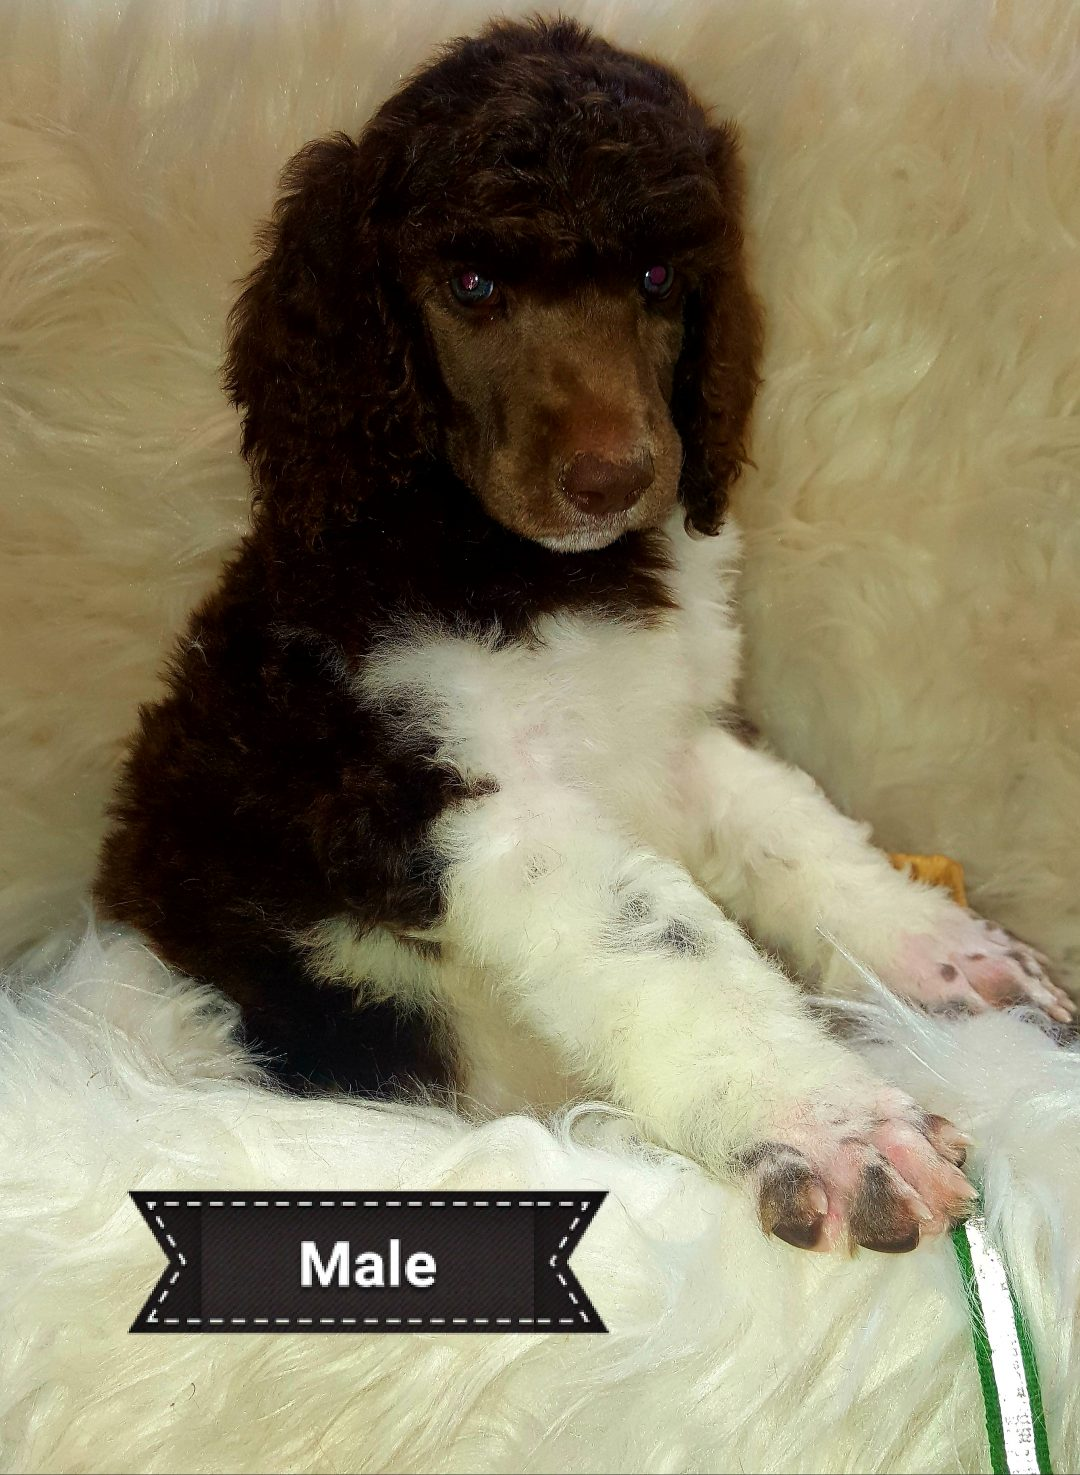 scout - AKC Standard Poodle for sale in Seaman, Ohio